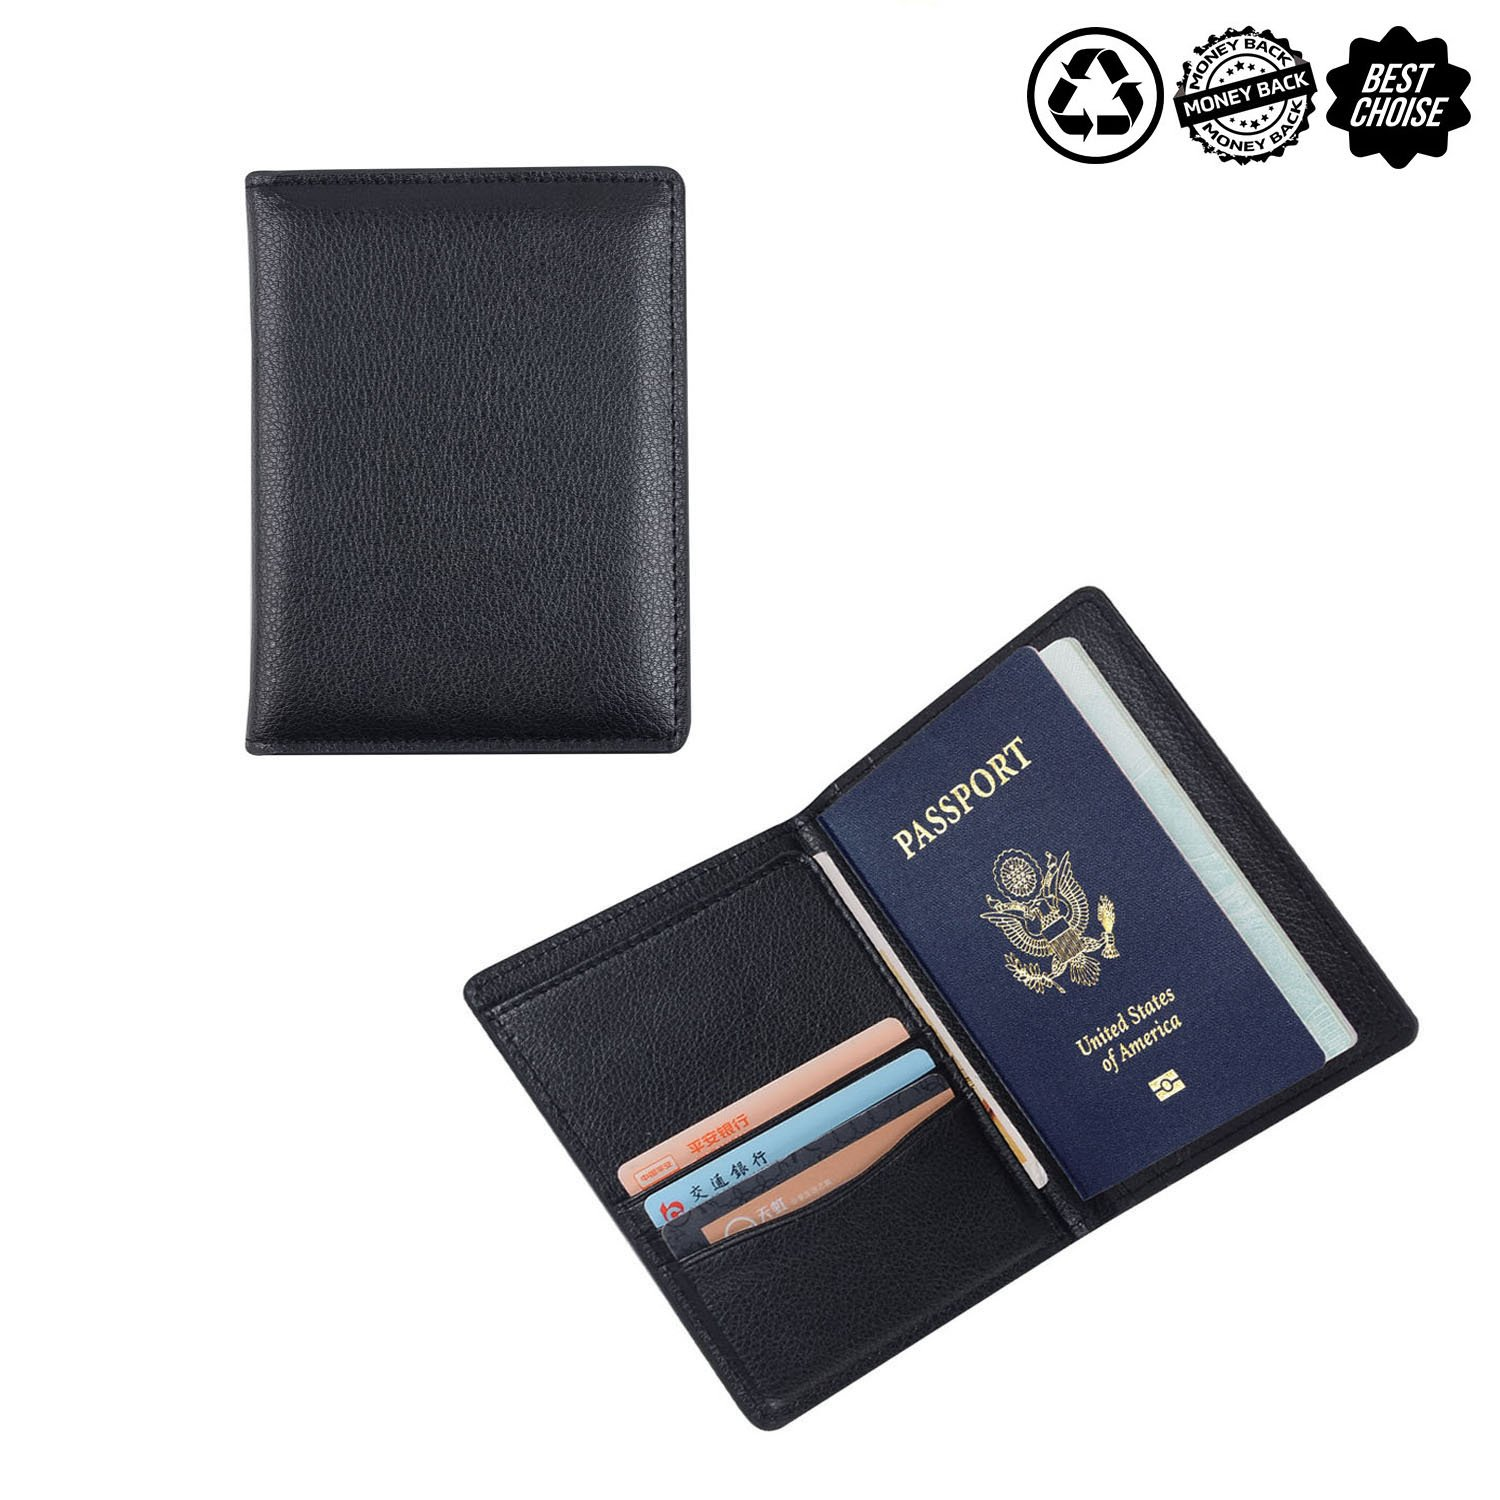 Leather Passport Holder Passport Cover Case Wallet for Men Women Travel (pu leather)